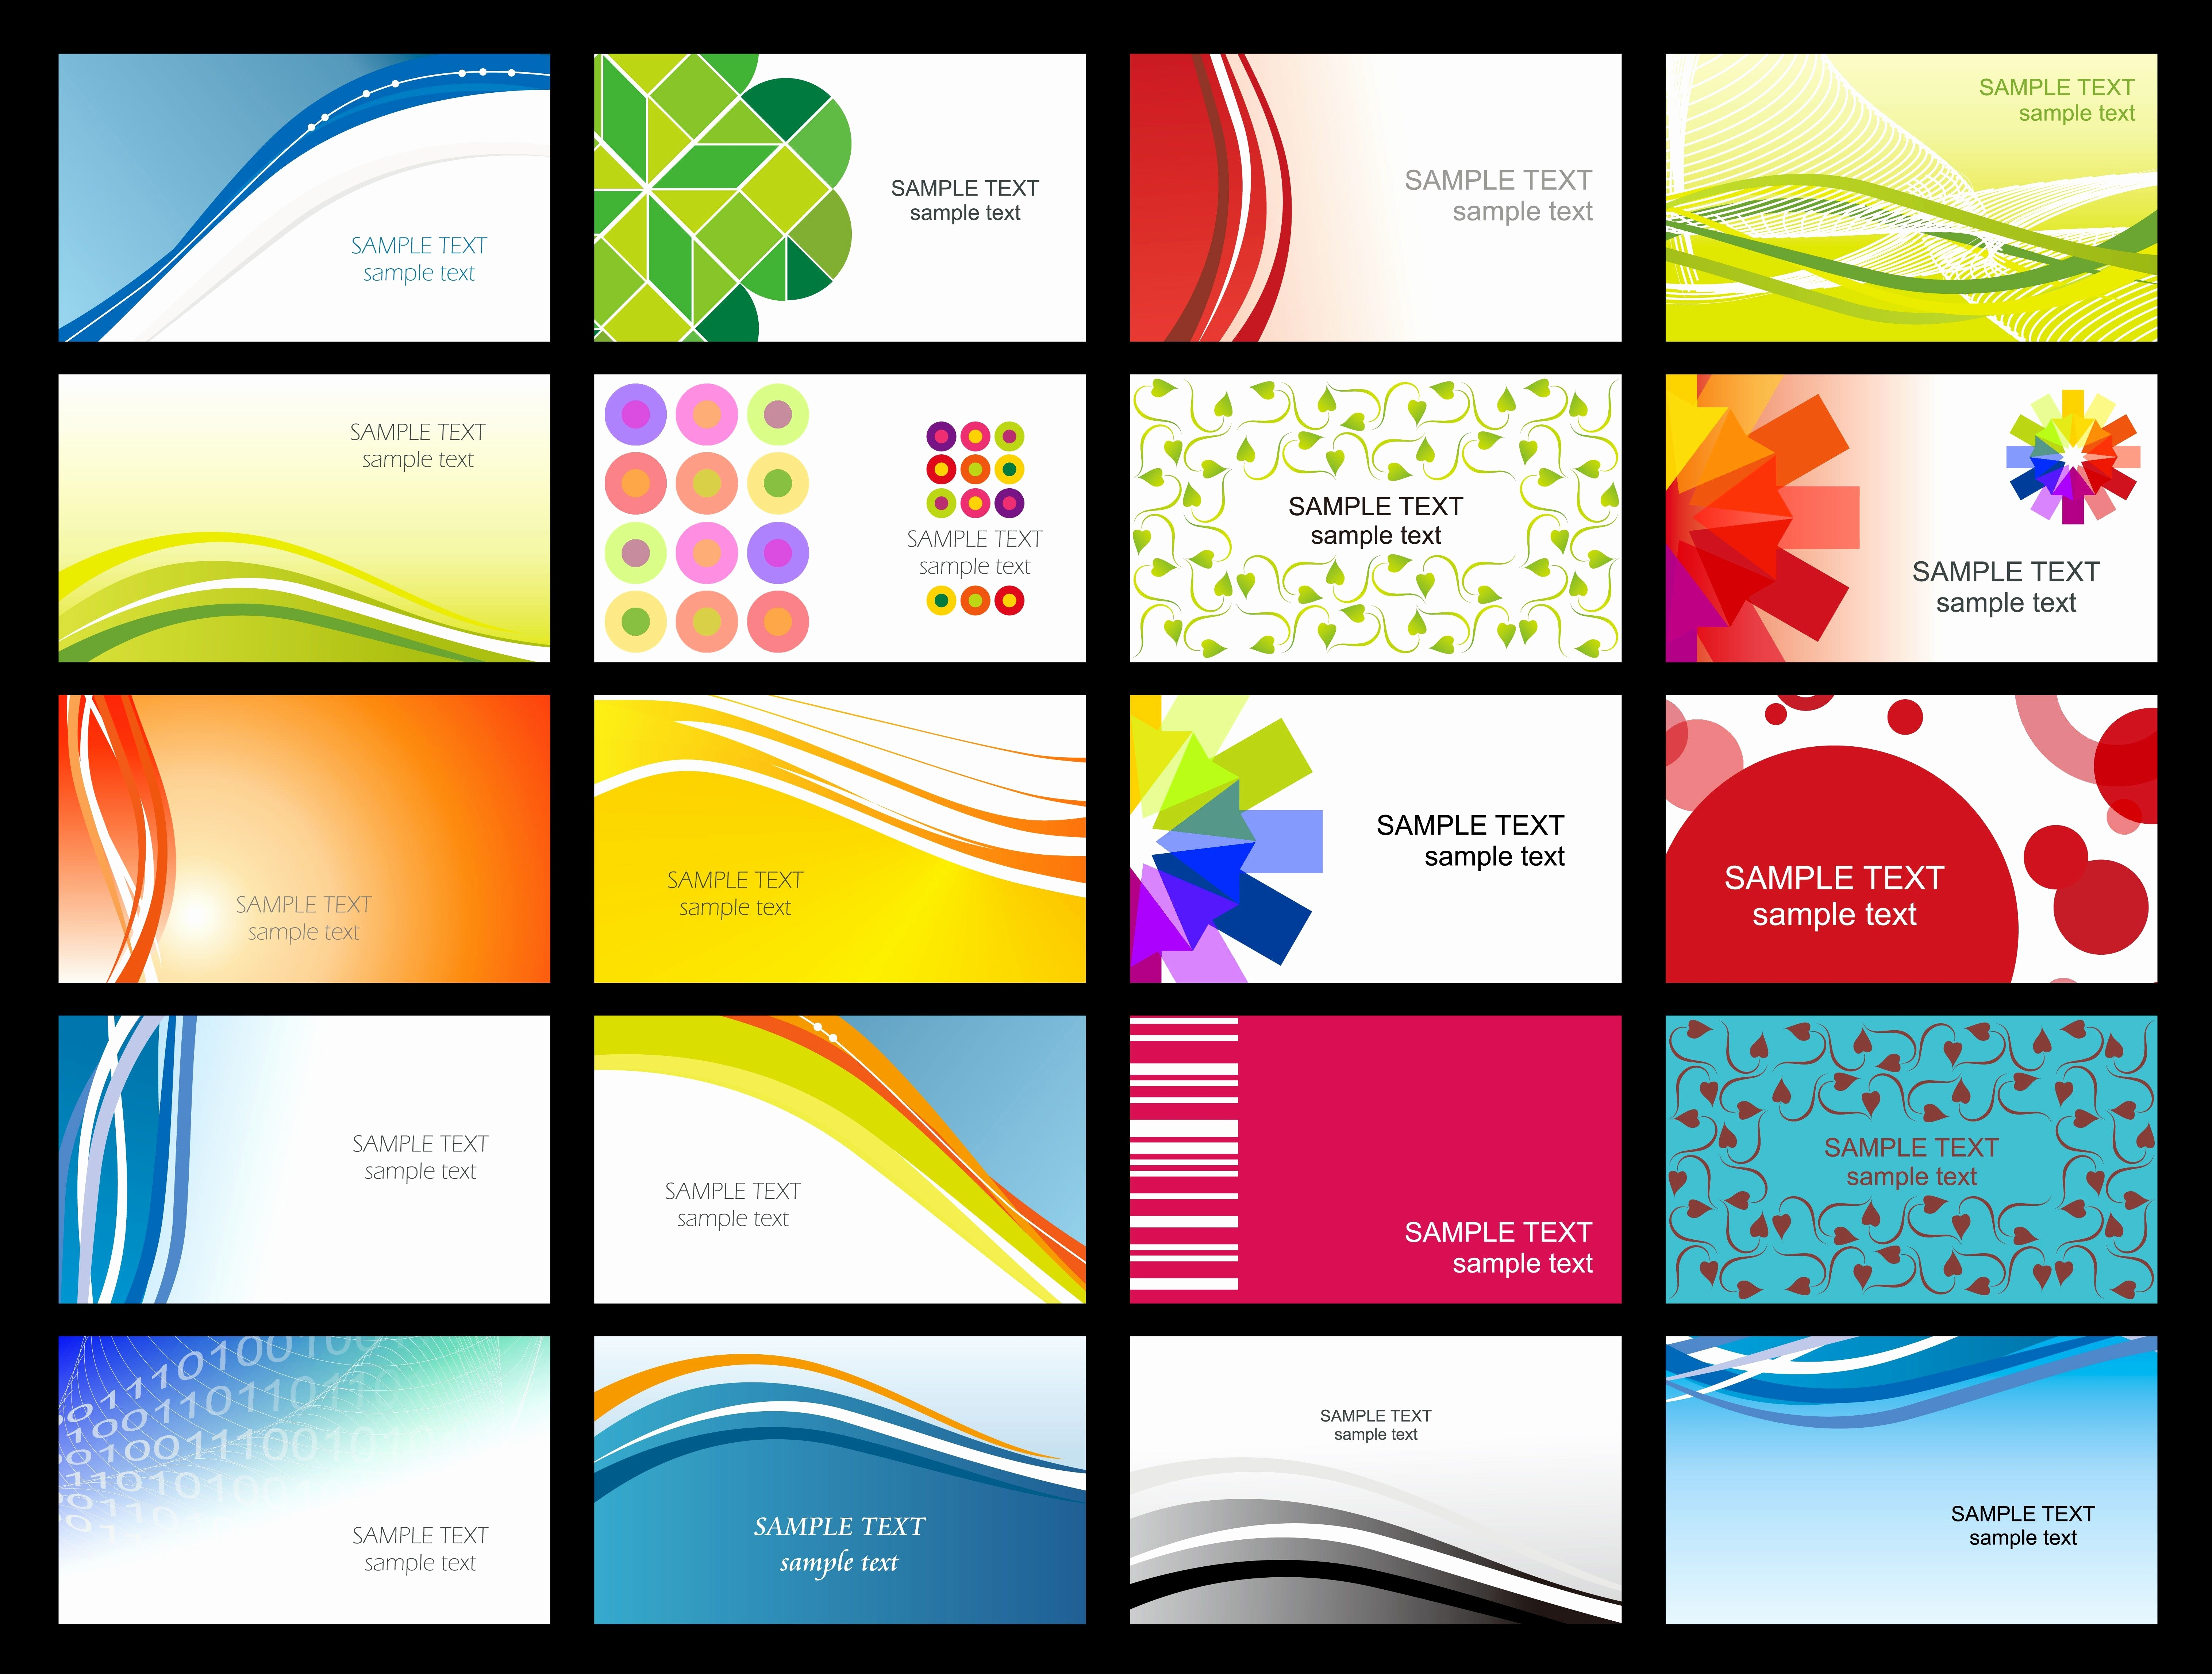 Free Printable Business Cards Templates Elegant 4 491 Free Business - Free Printable Business Card Templates